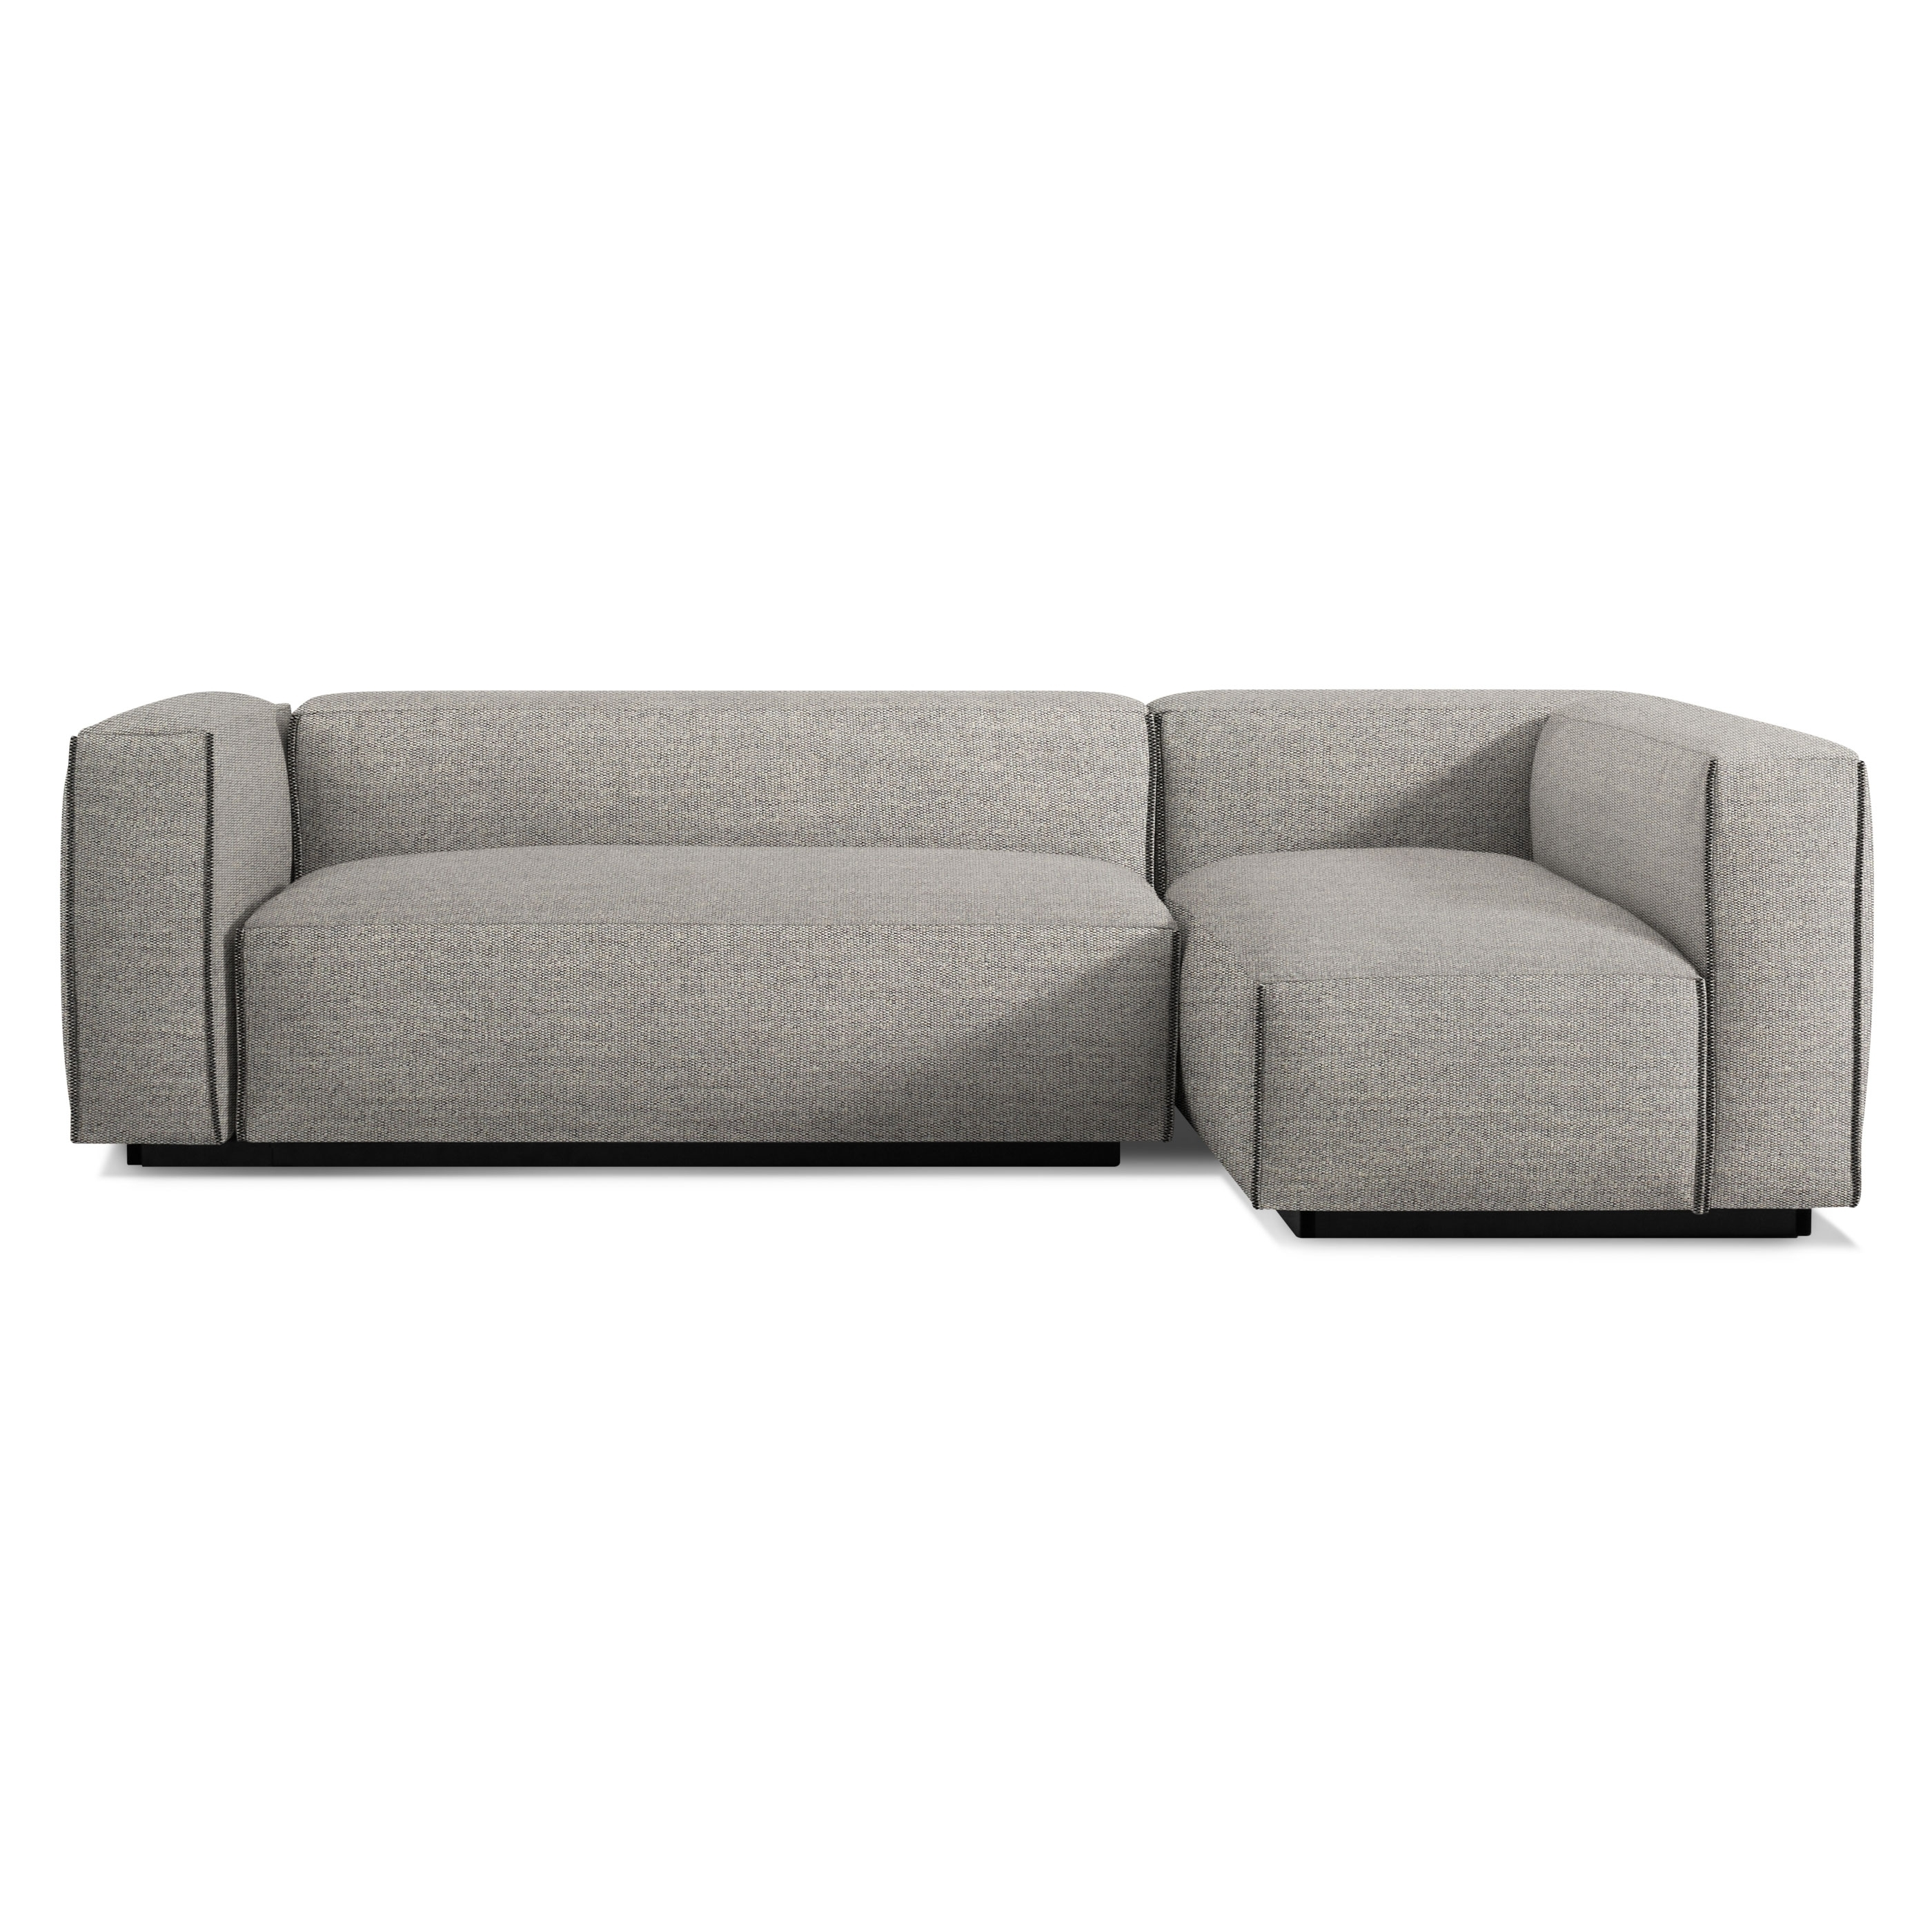 A Small Sectional Sofa Is Adorable Home Furniture For Your Living intended for Avery 2 Piece Sectionals With Raf Armless Chaise (Image 2 of 30)